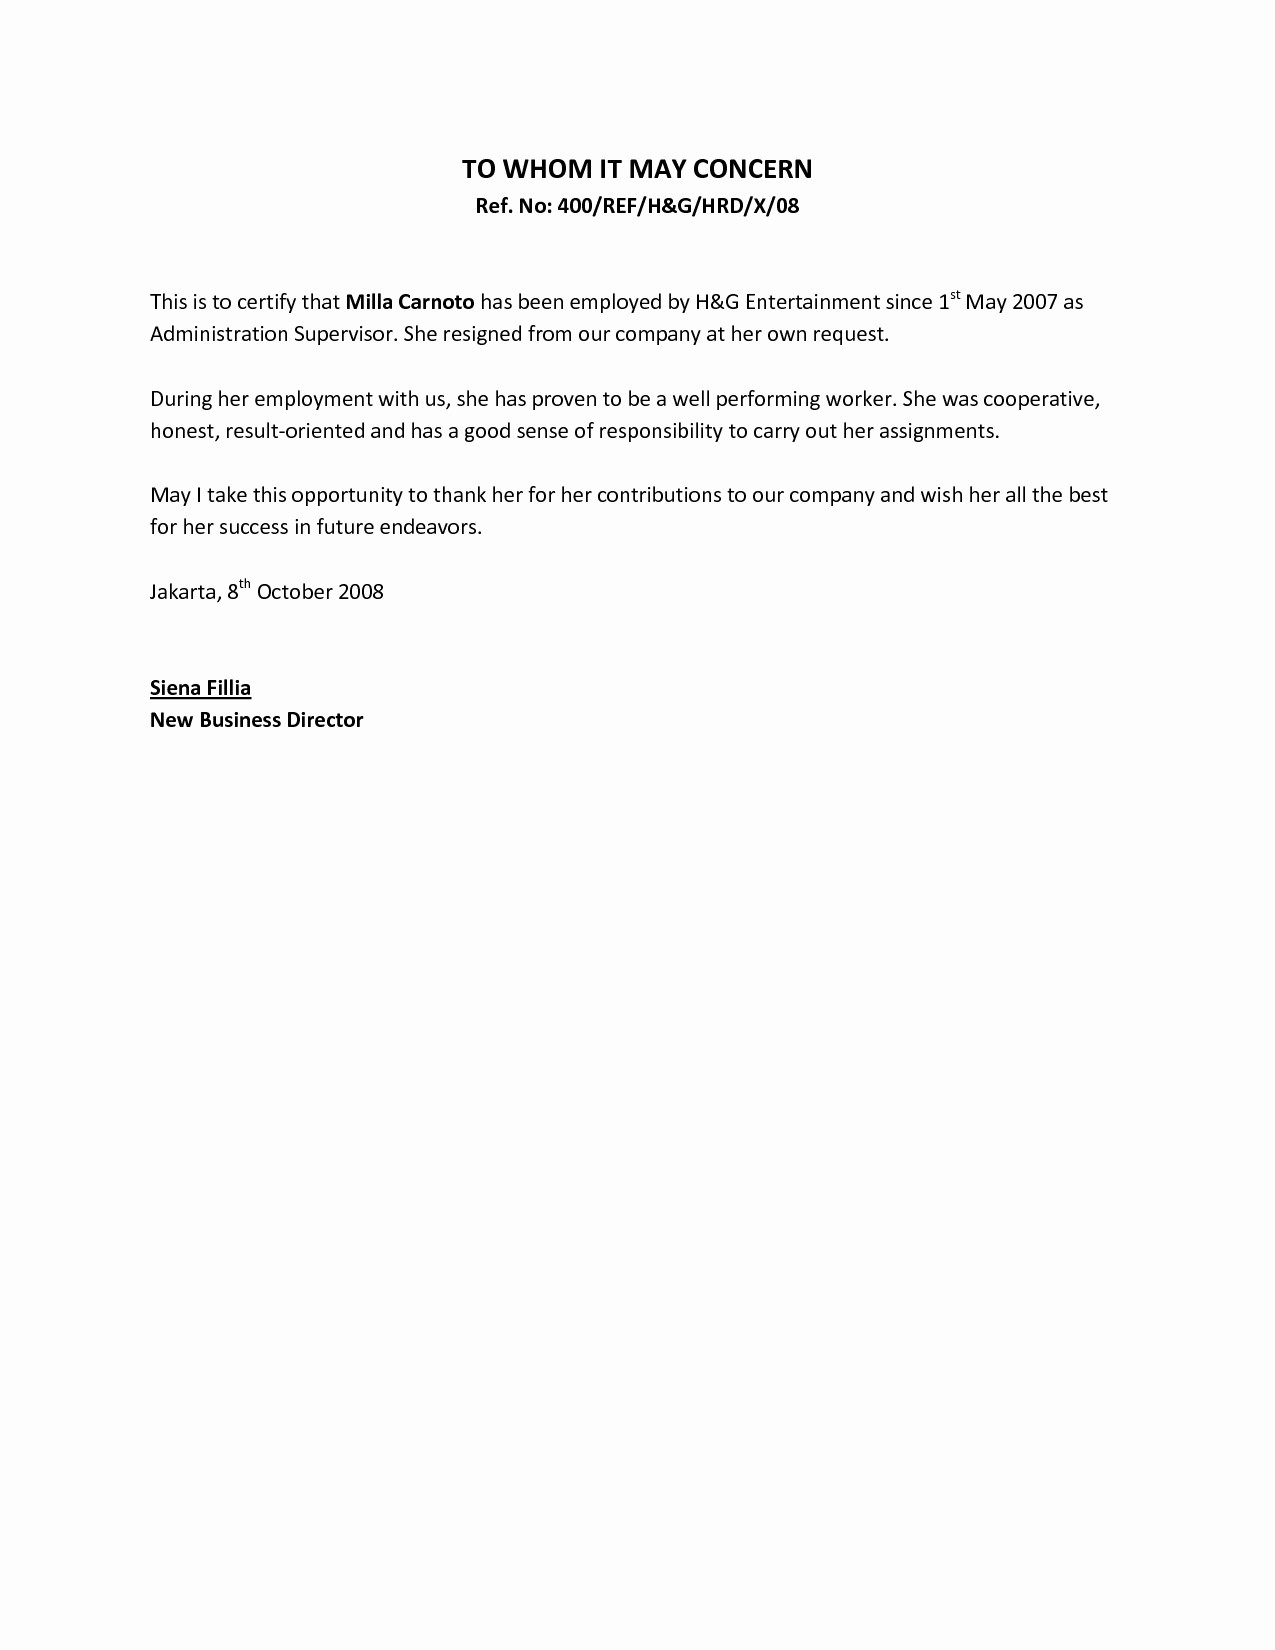 Sample Of Employee Reference Letter Inspirational Job Letter From Employer